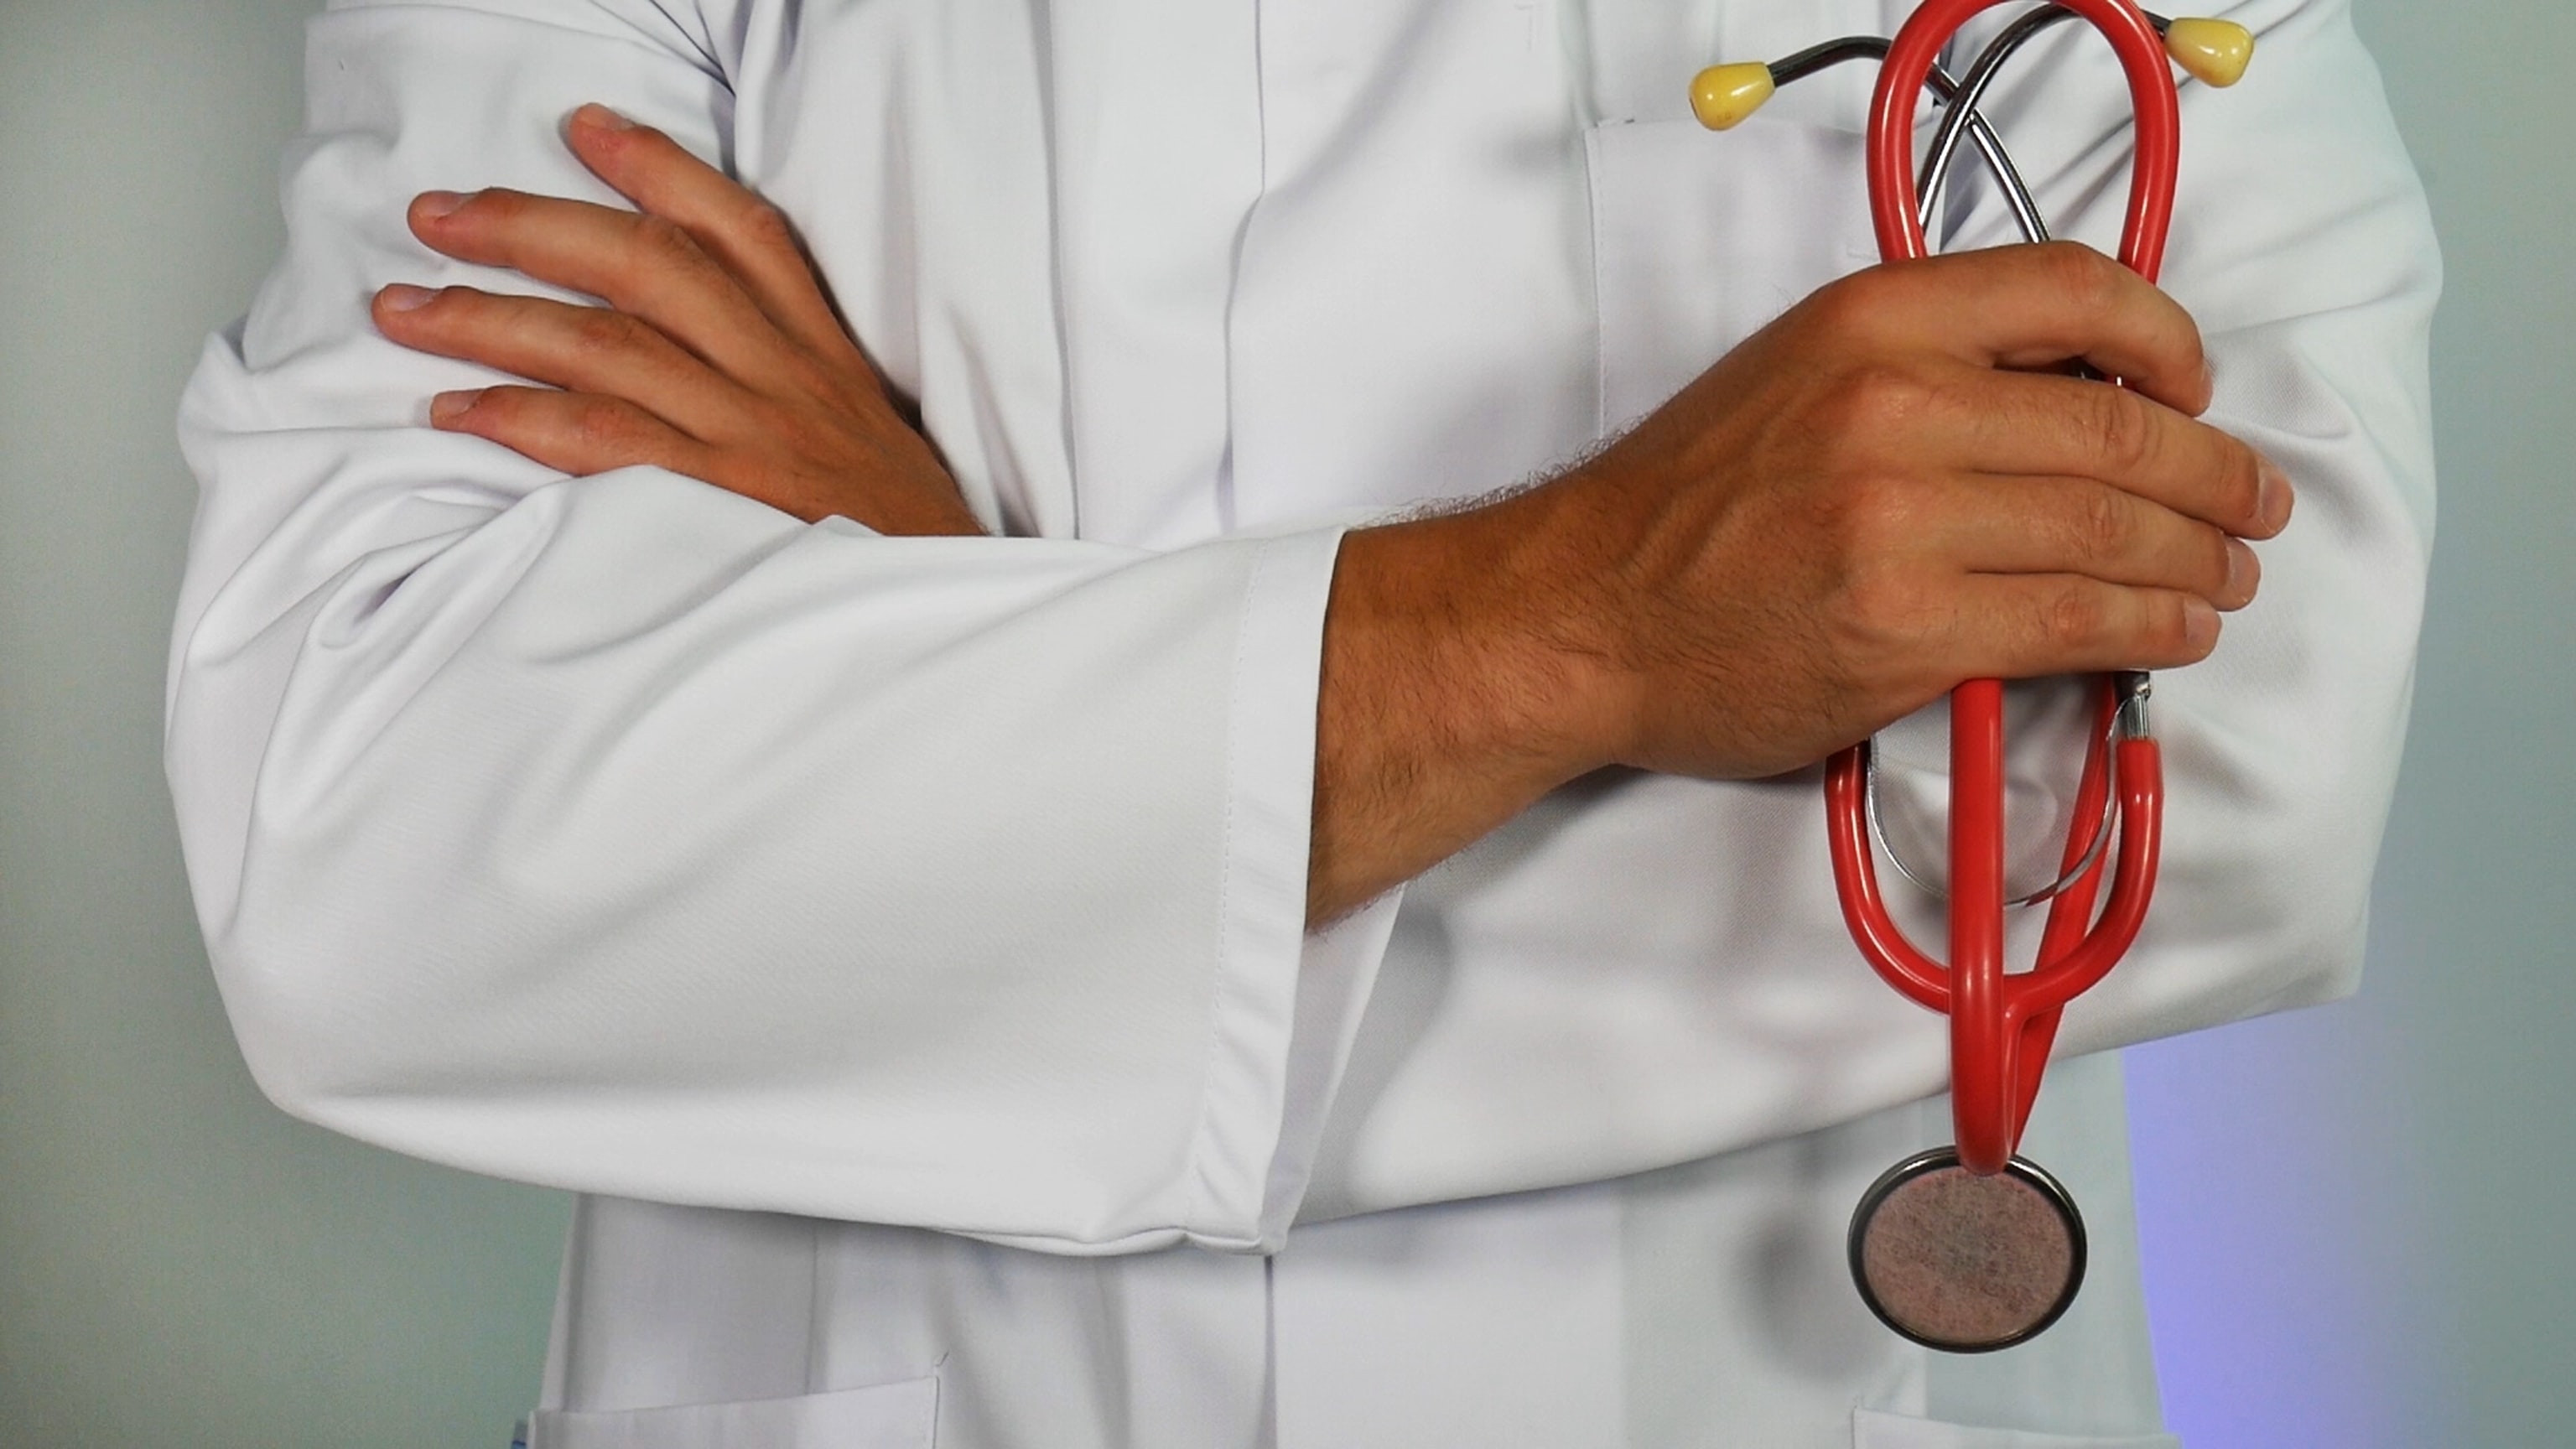 Essential Workers: Medical Staff